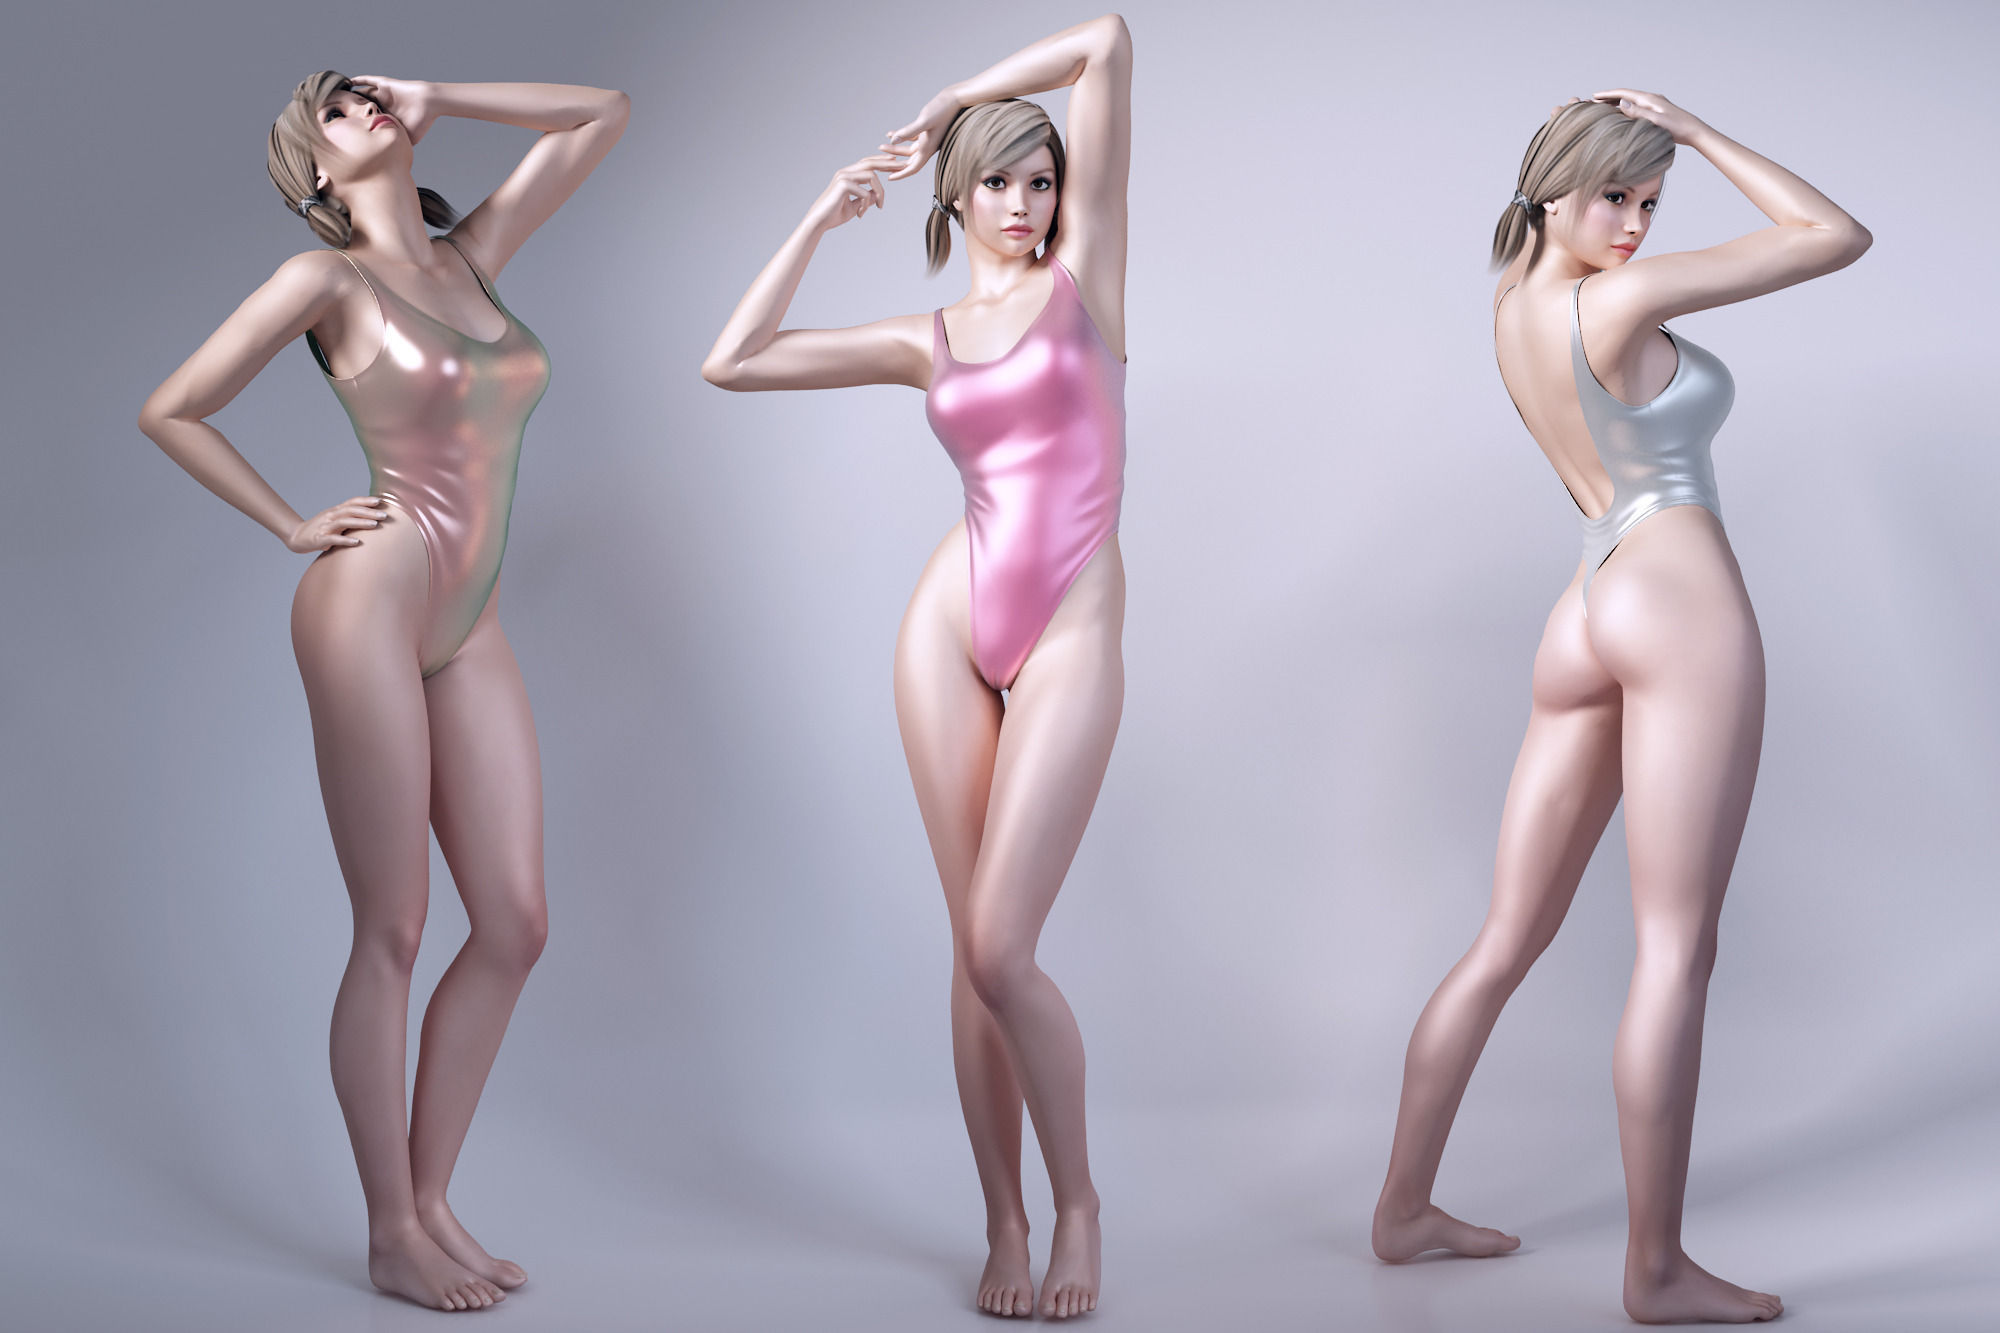 3d model girl nude erotic pictures